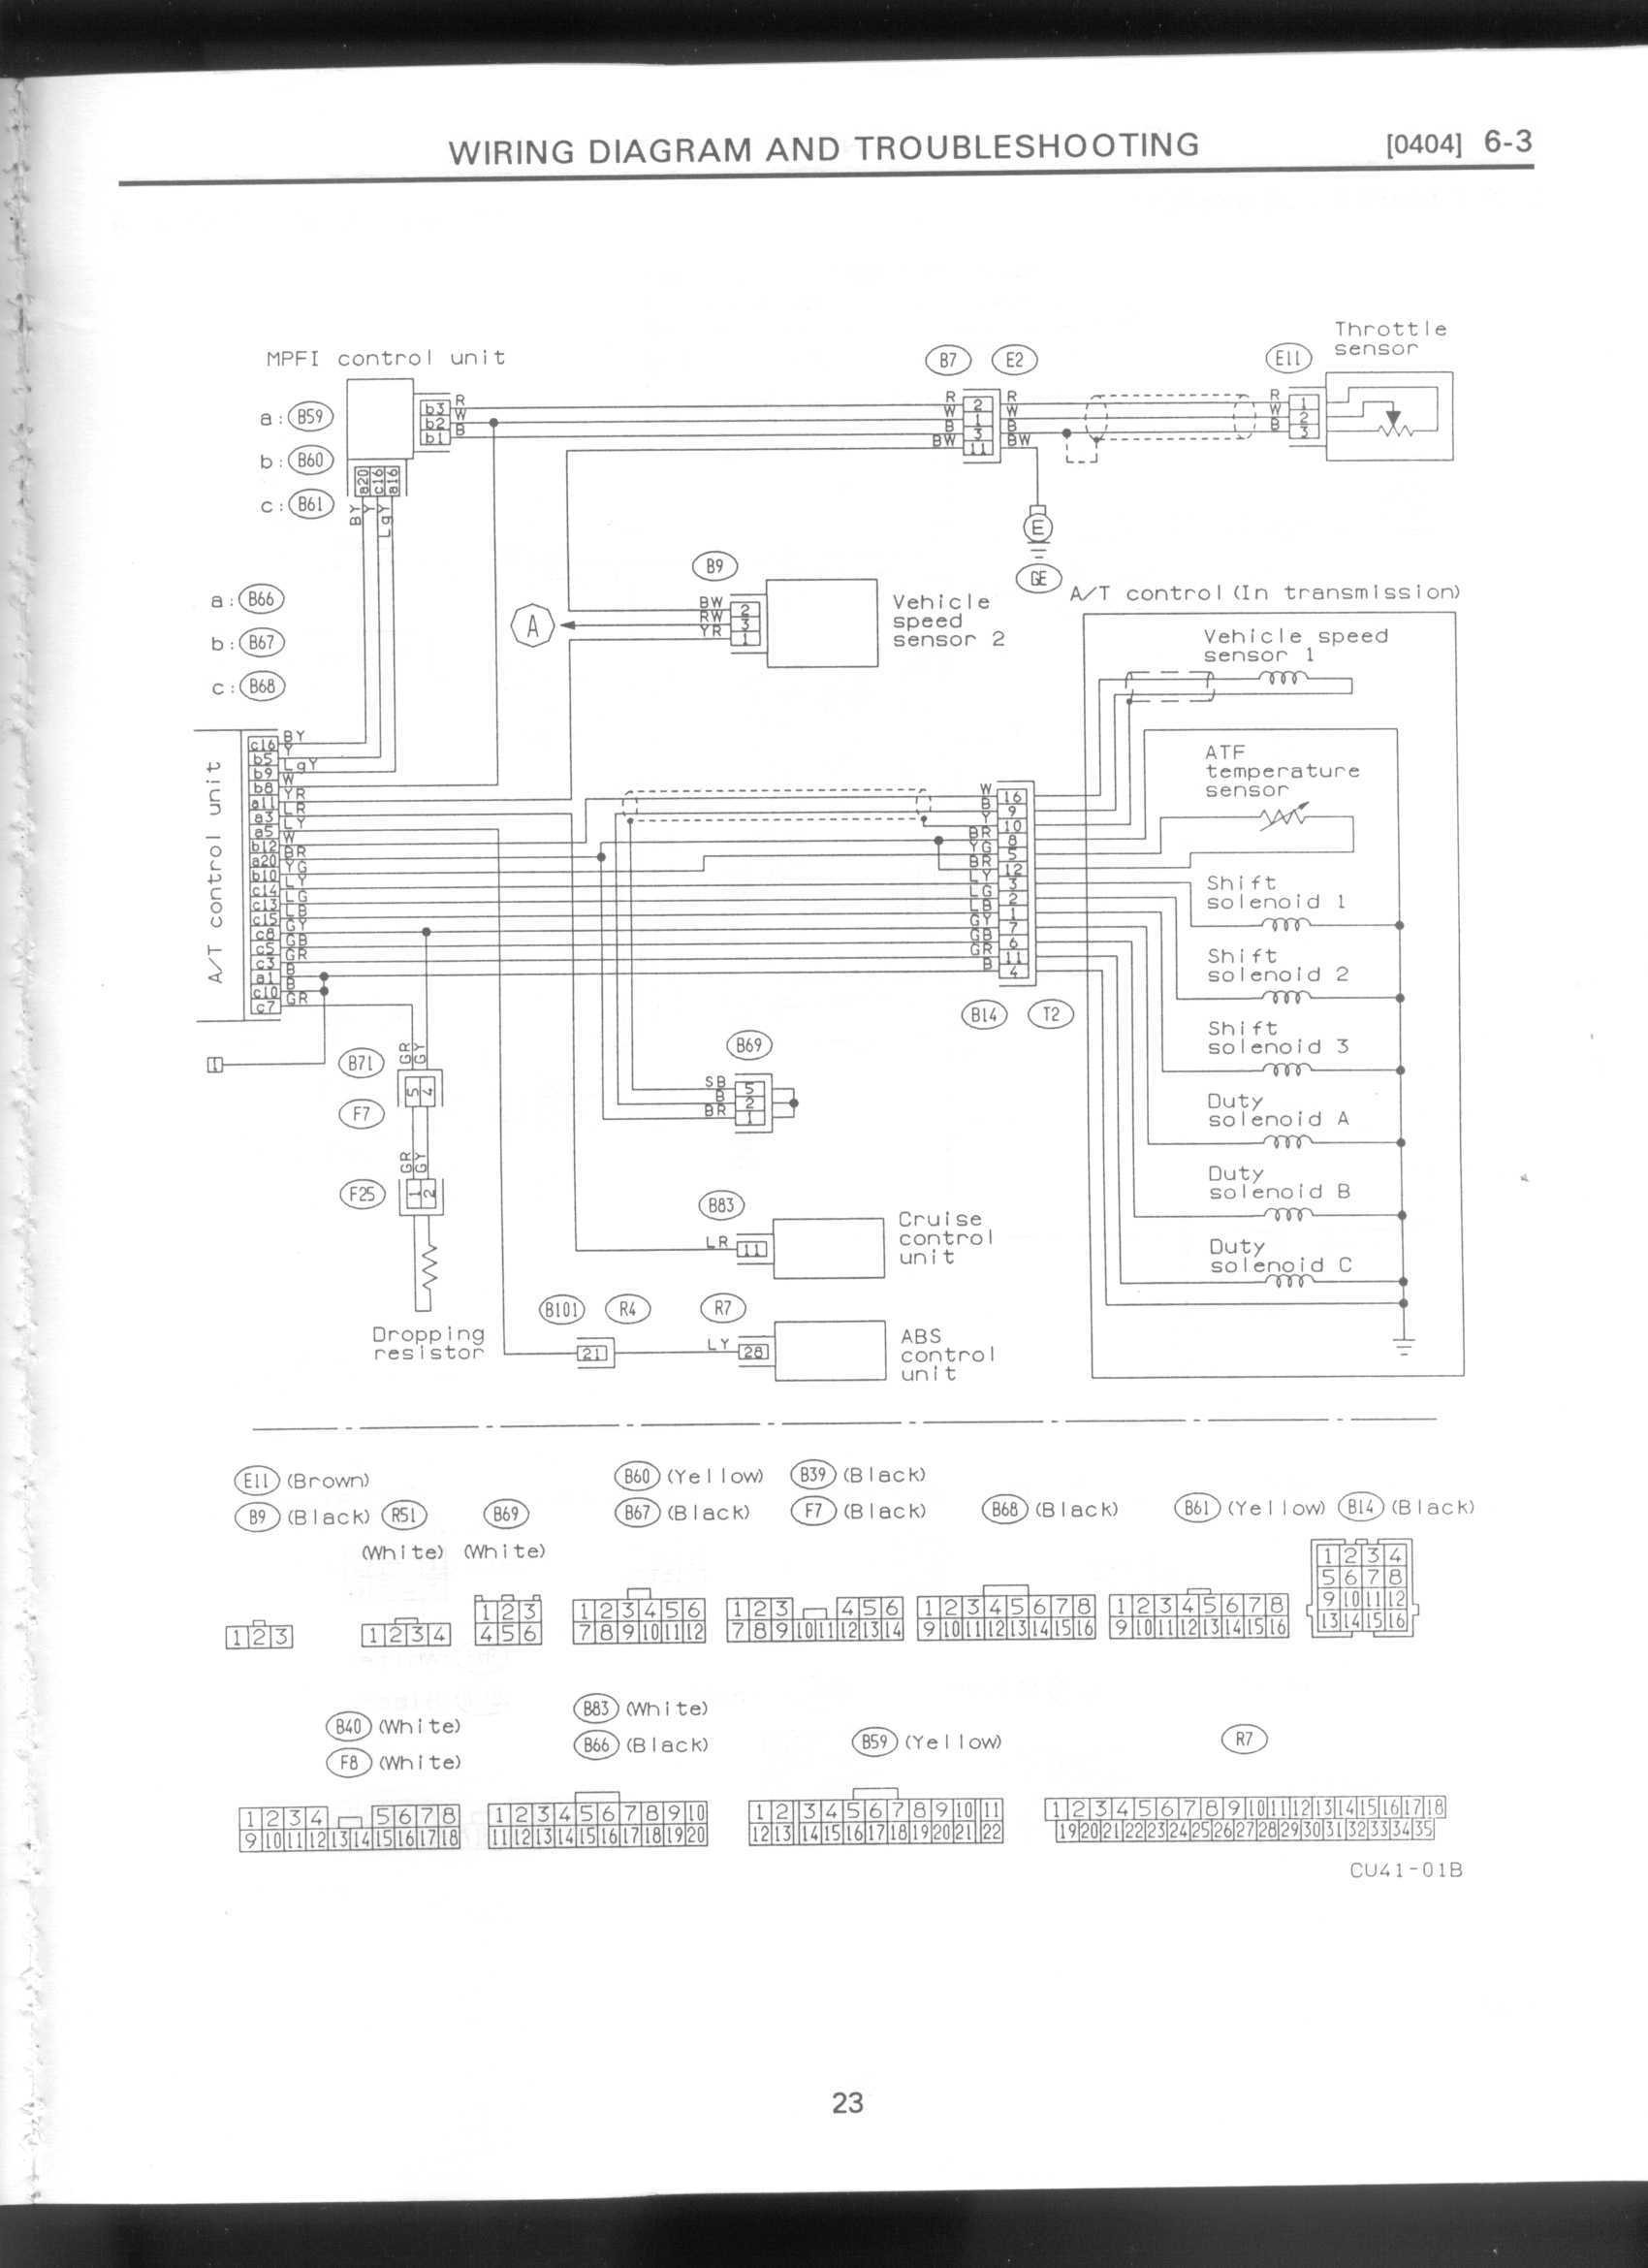 subaru stereo wiring subaru wrx radio wiring diagram wiring diagrams and schematics 1992 subaru legacy wagon radio wiring diagram